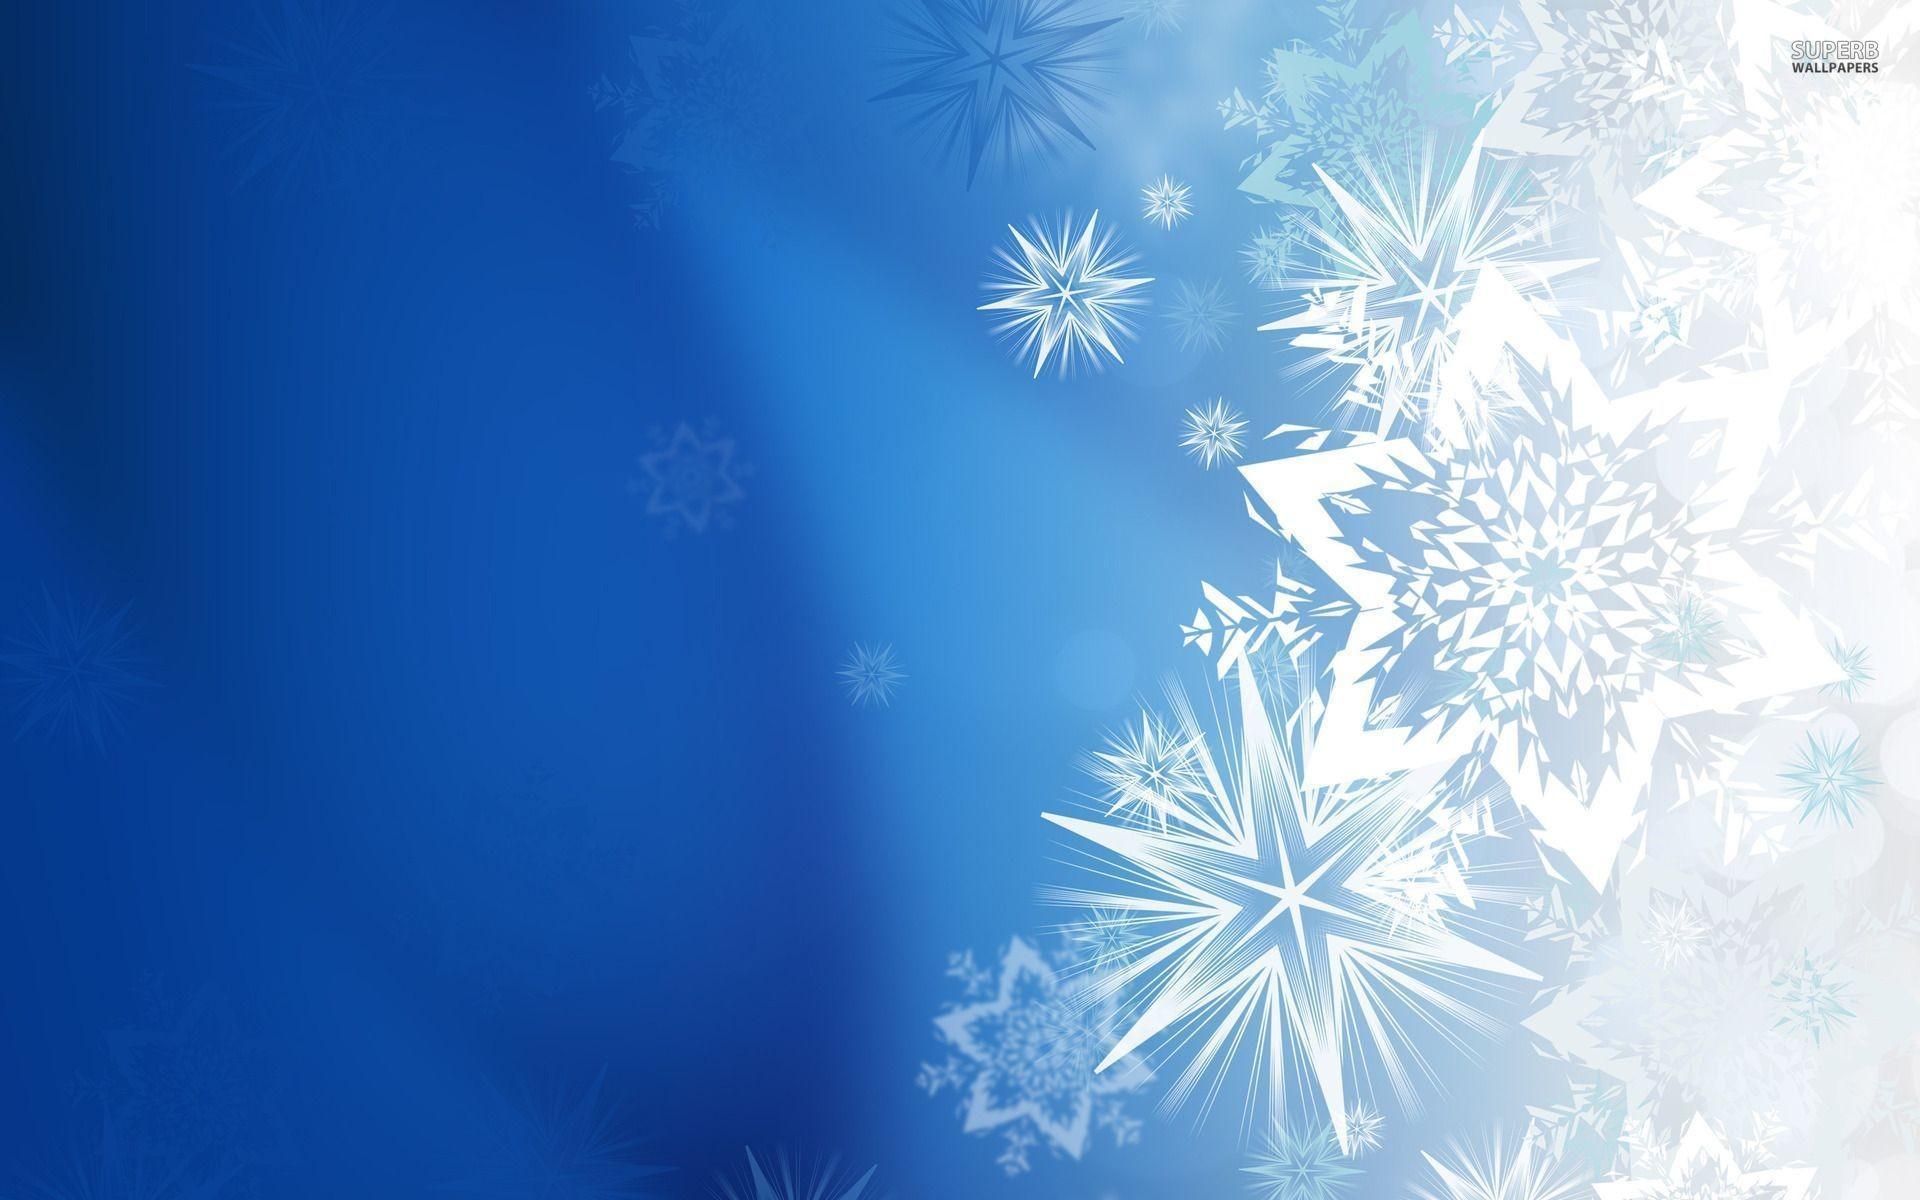 Res: 1920x1200, Snowflakes & Stars wallpaper - Abstract wallpapers - #16989